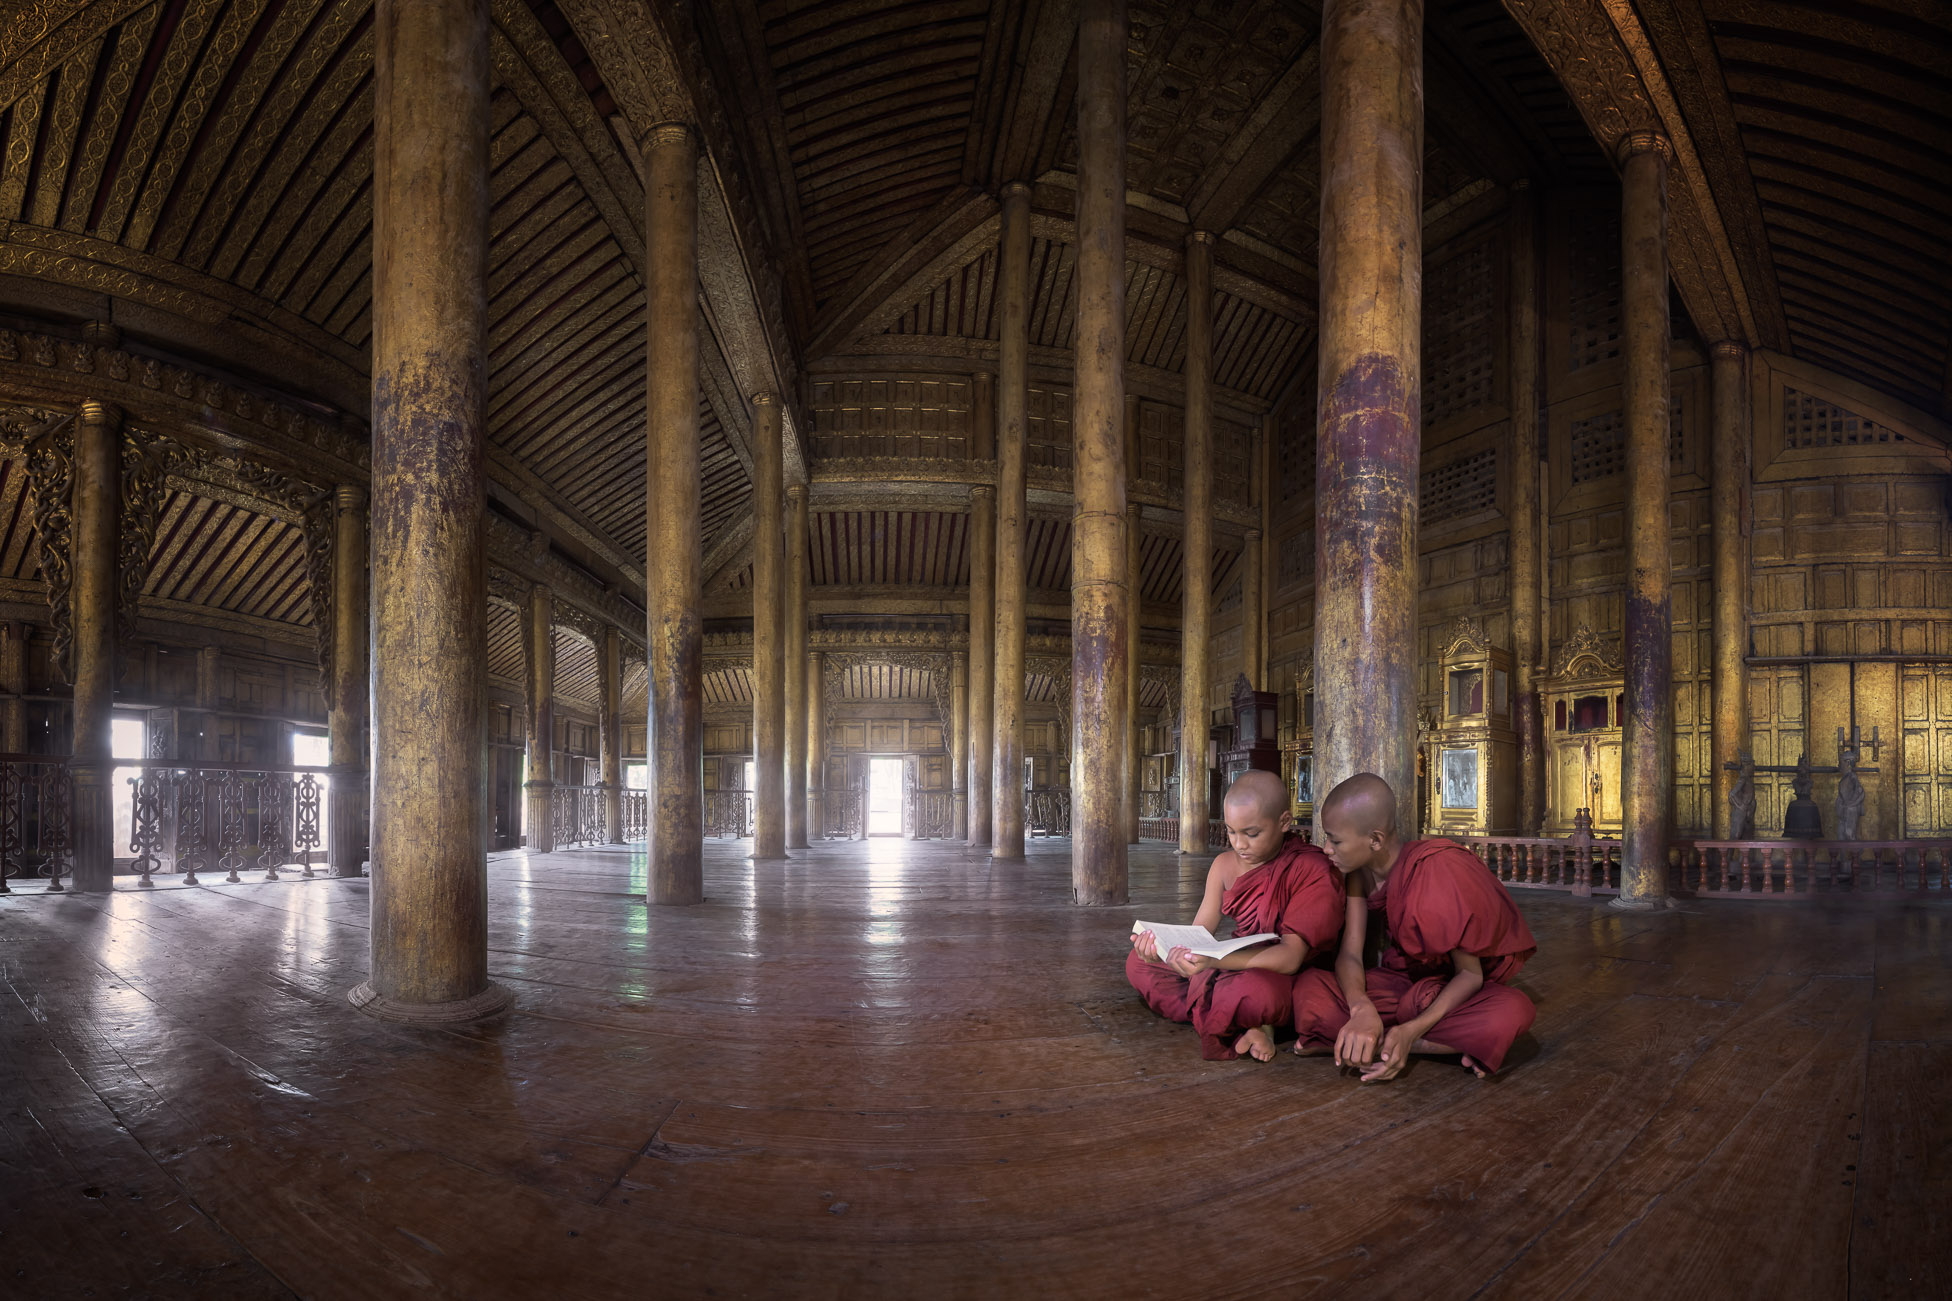 Two Monks Reading Book in Shwenandaw Monastery, Mandalay, Myanmar